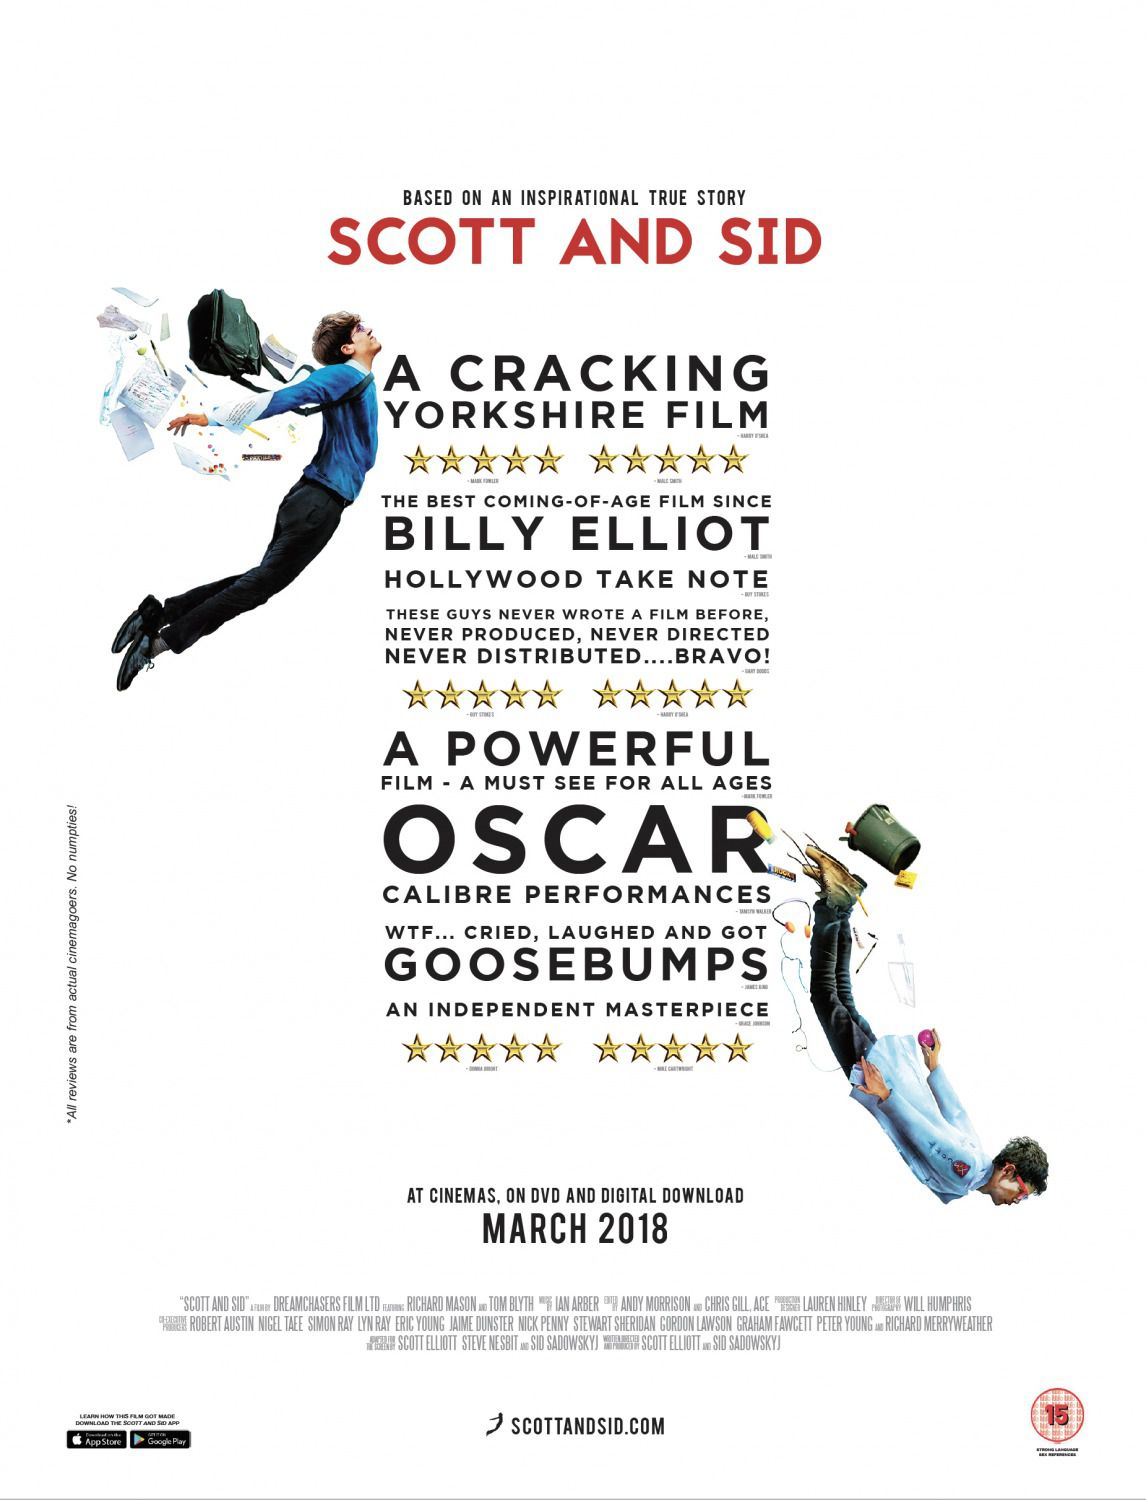 Scott and Sid - based on a true story - film poster 2018